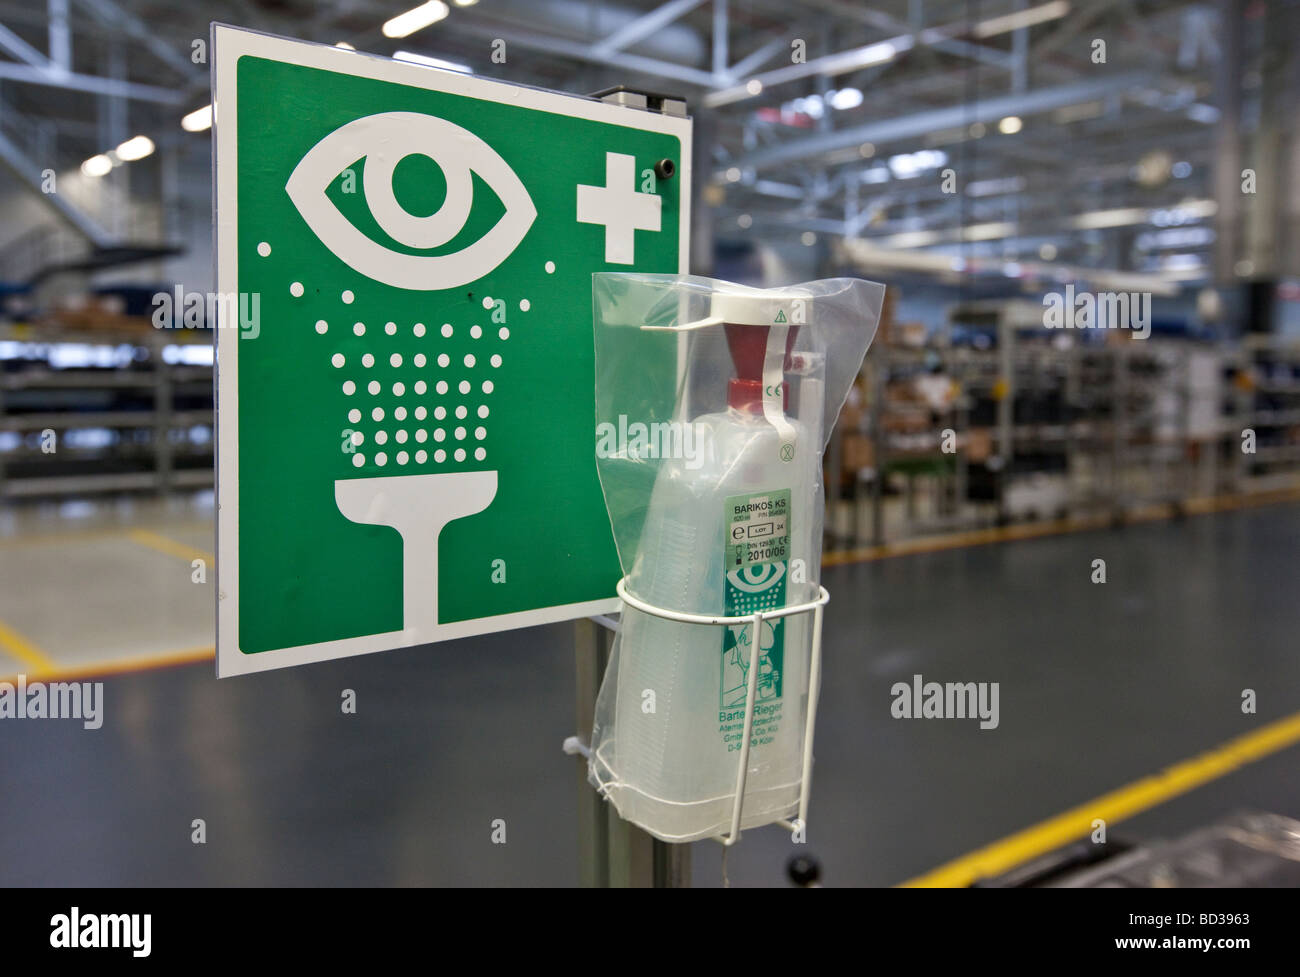 First aid for eye injuries in an engine works, Germany - Stock Image